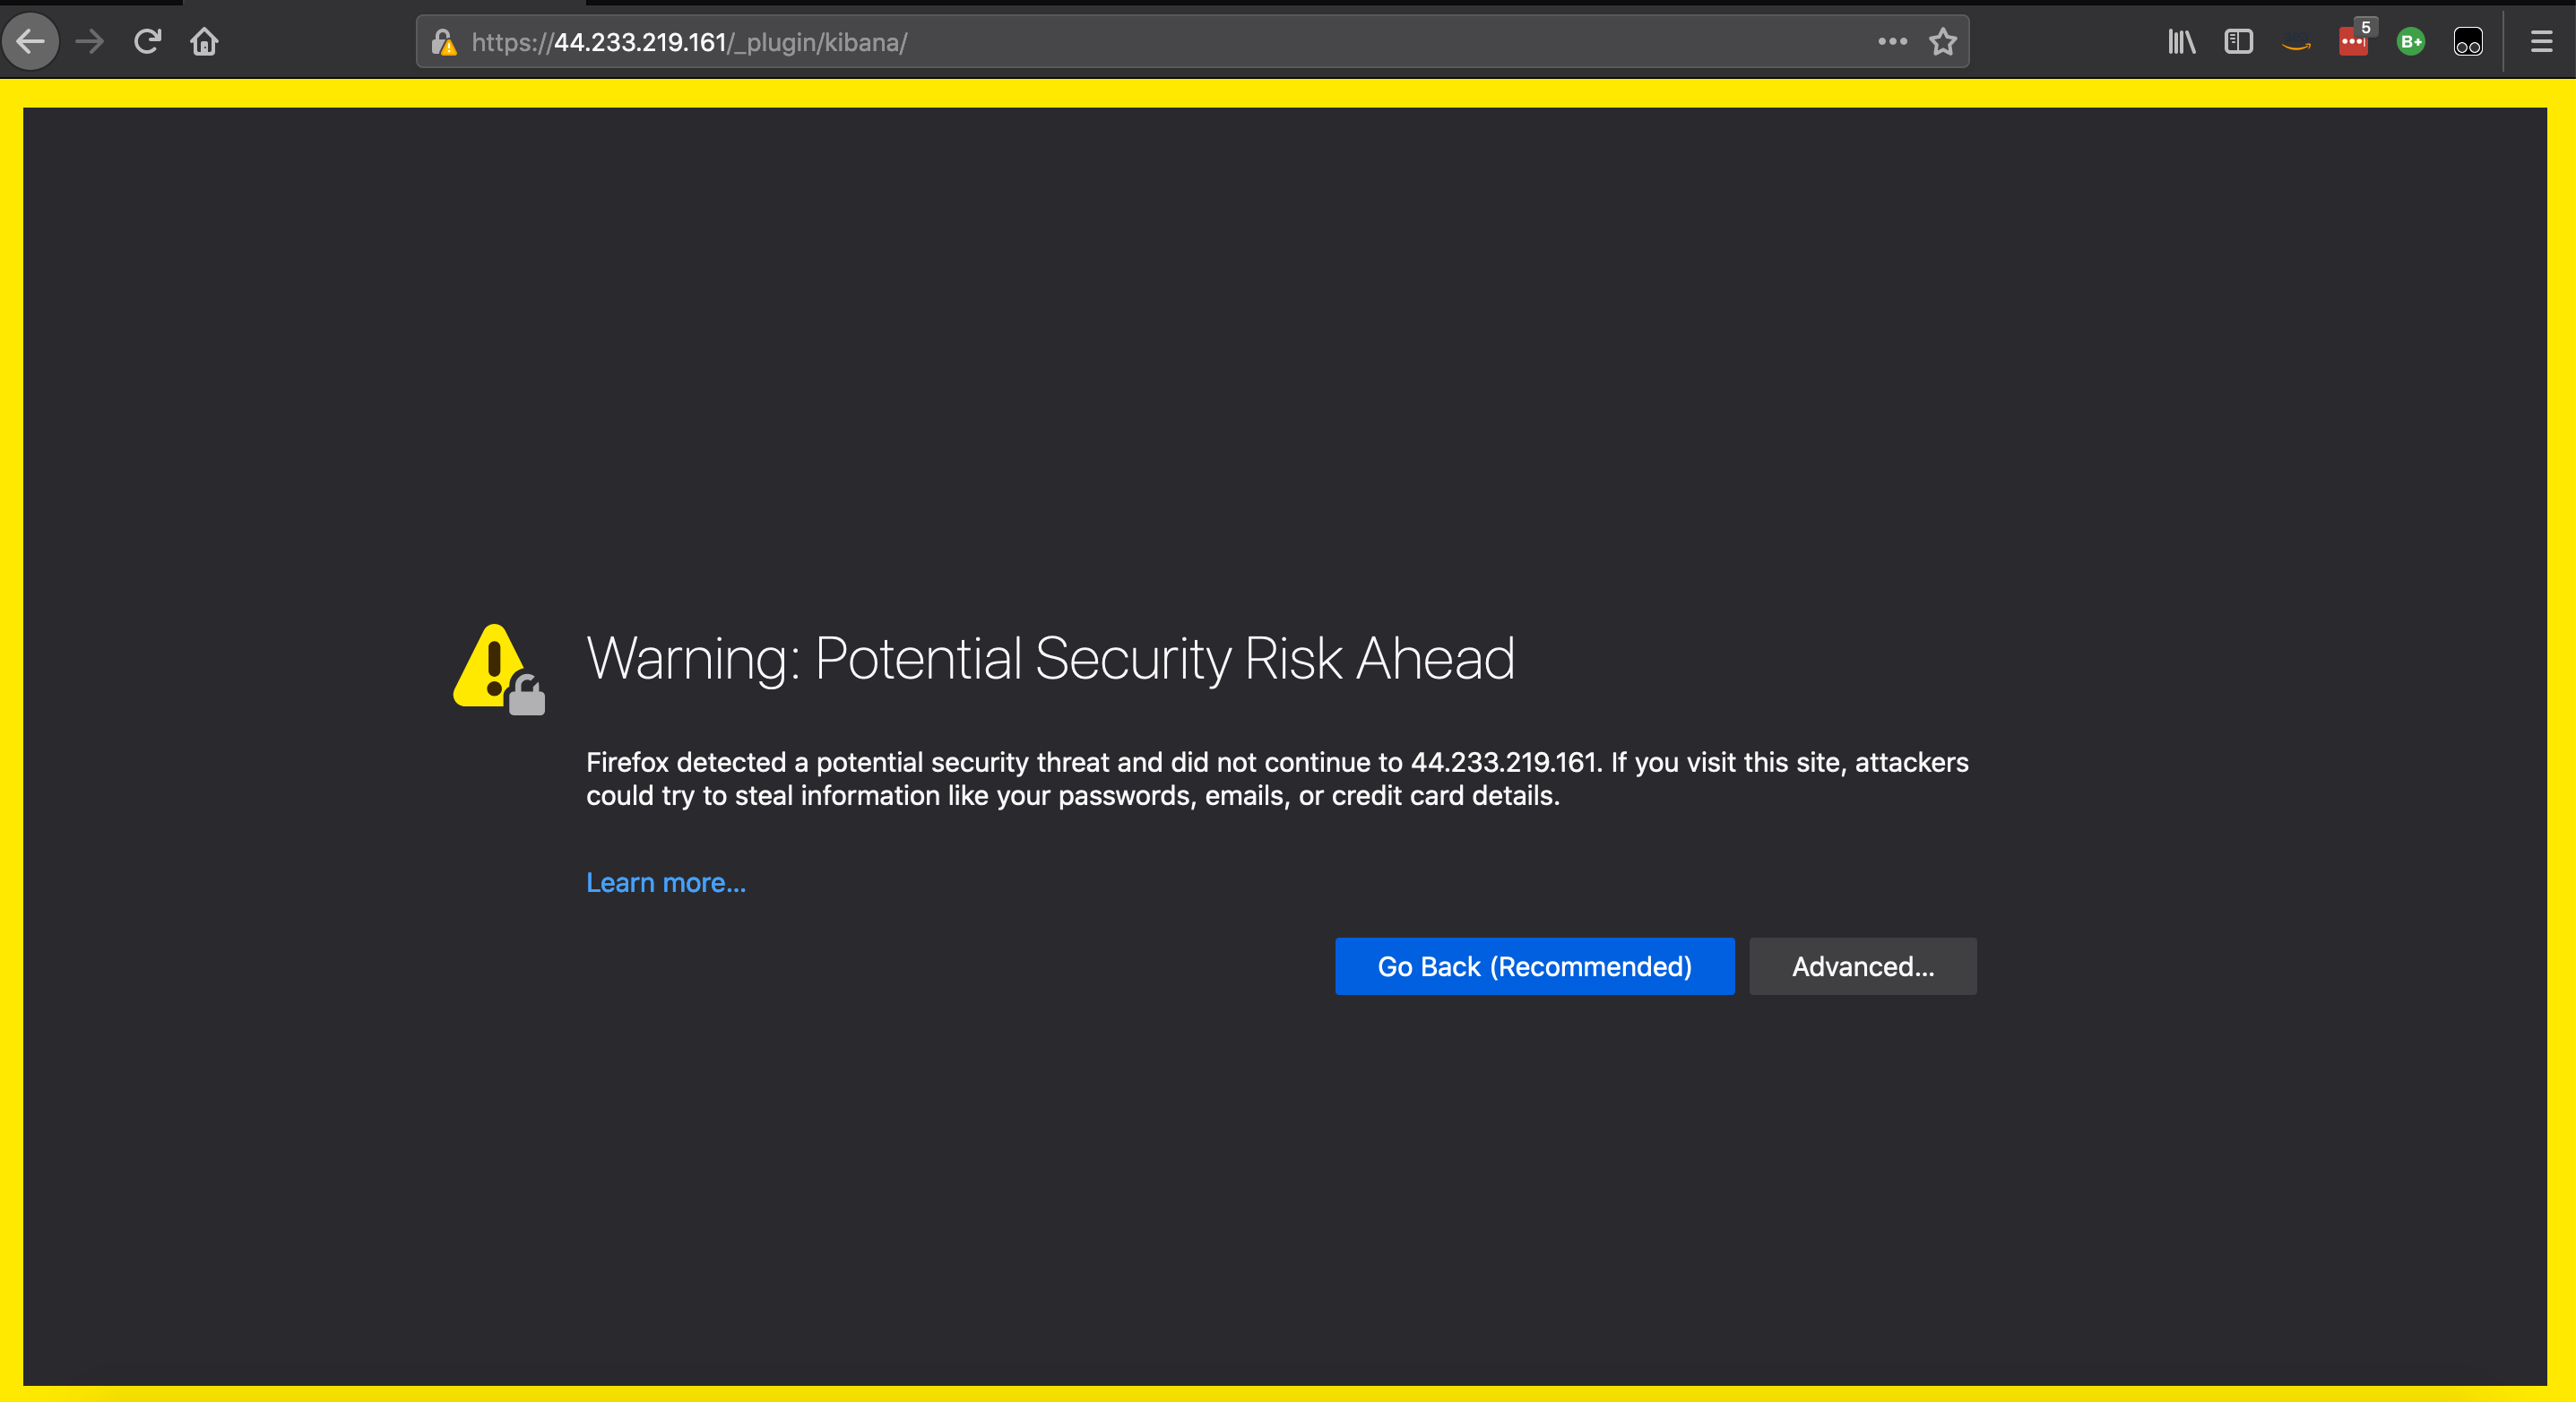 The browser displays Warning: Potential Security Risk Ahead with Go Back (Recommended) and Advanced buttons.